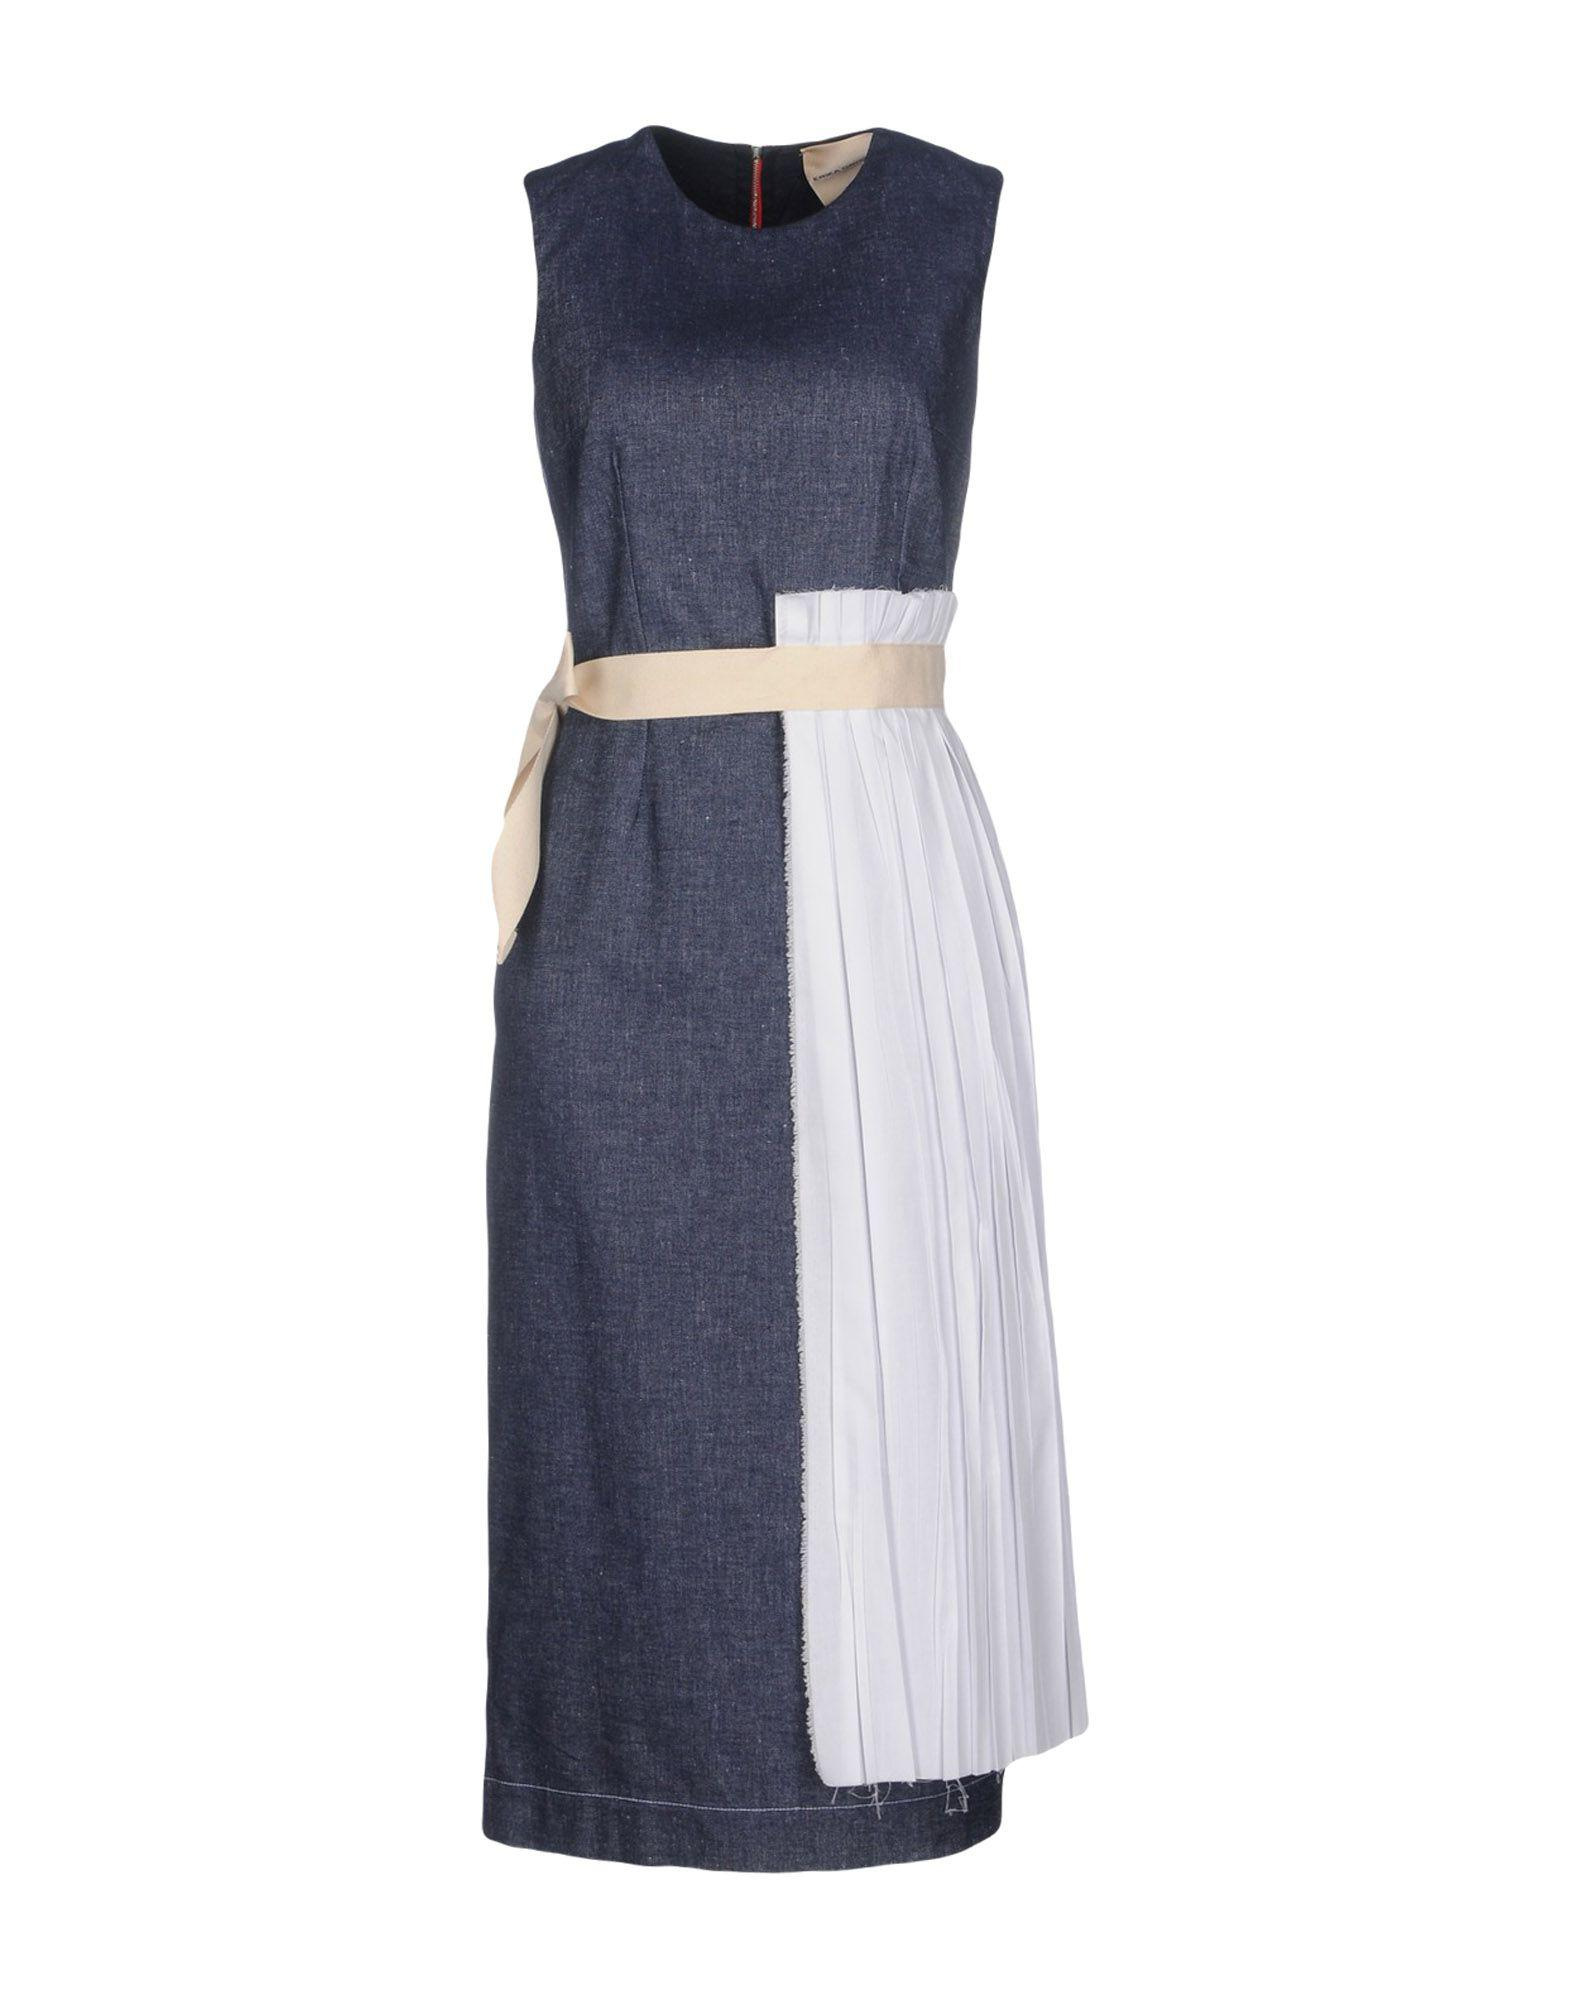 DRESSES - 3/4 length dresses Erika Cavallini Semi Couture Buy Cheap Affordable Buy Cheap View Free Shipping Cheap Online 2018 New fjUep6Urro